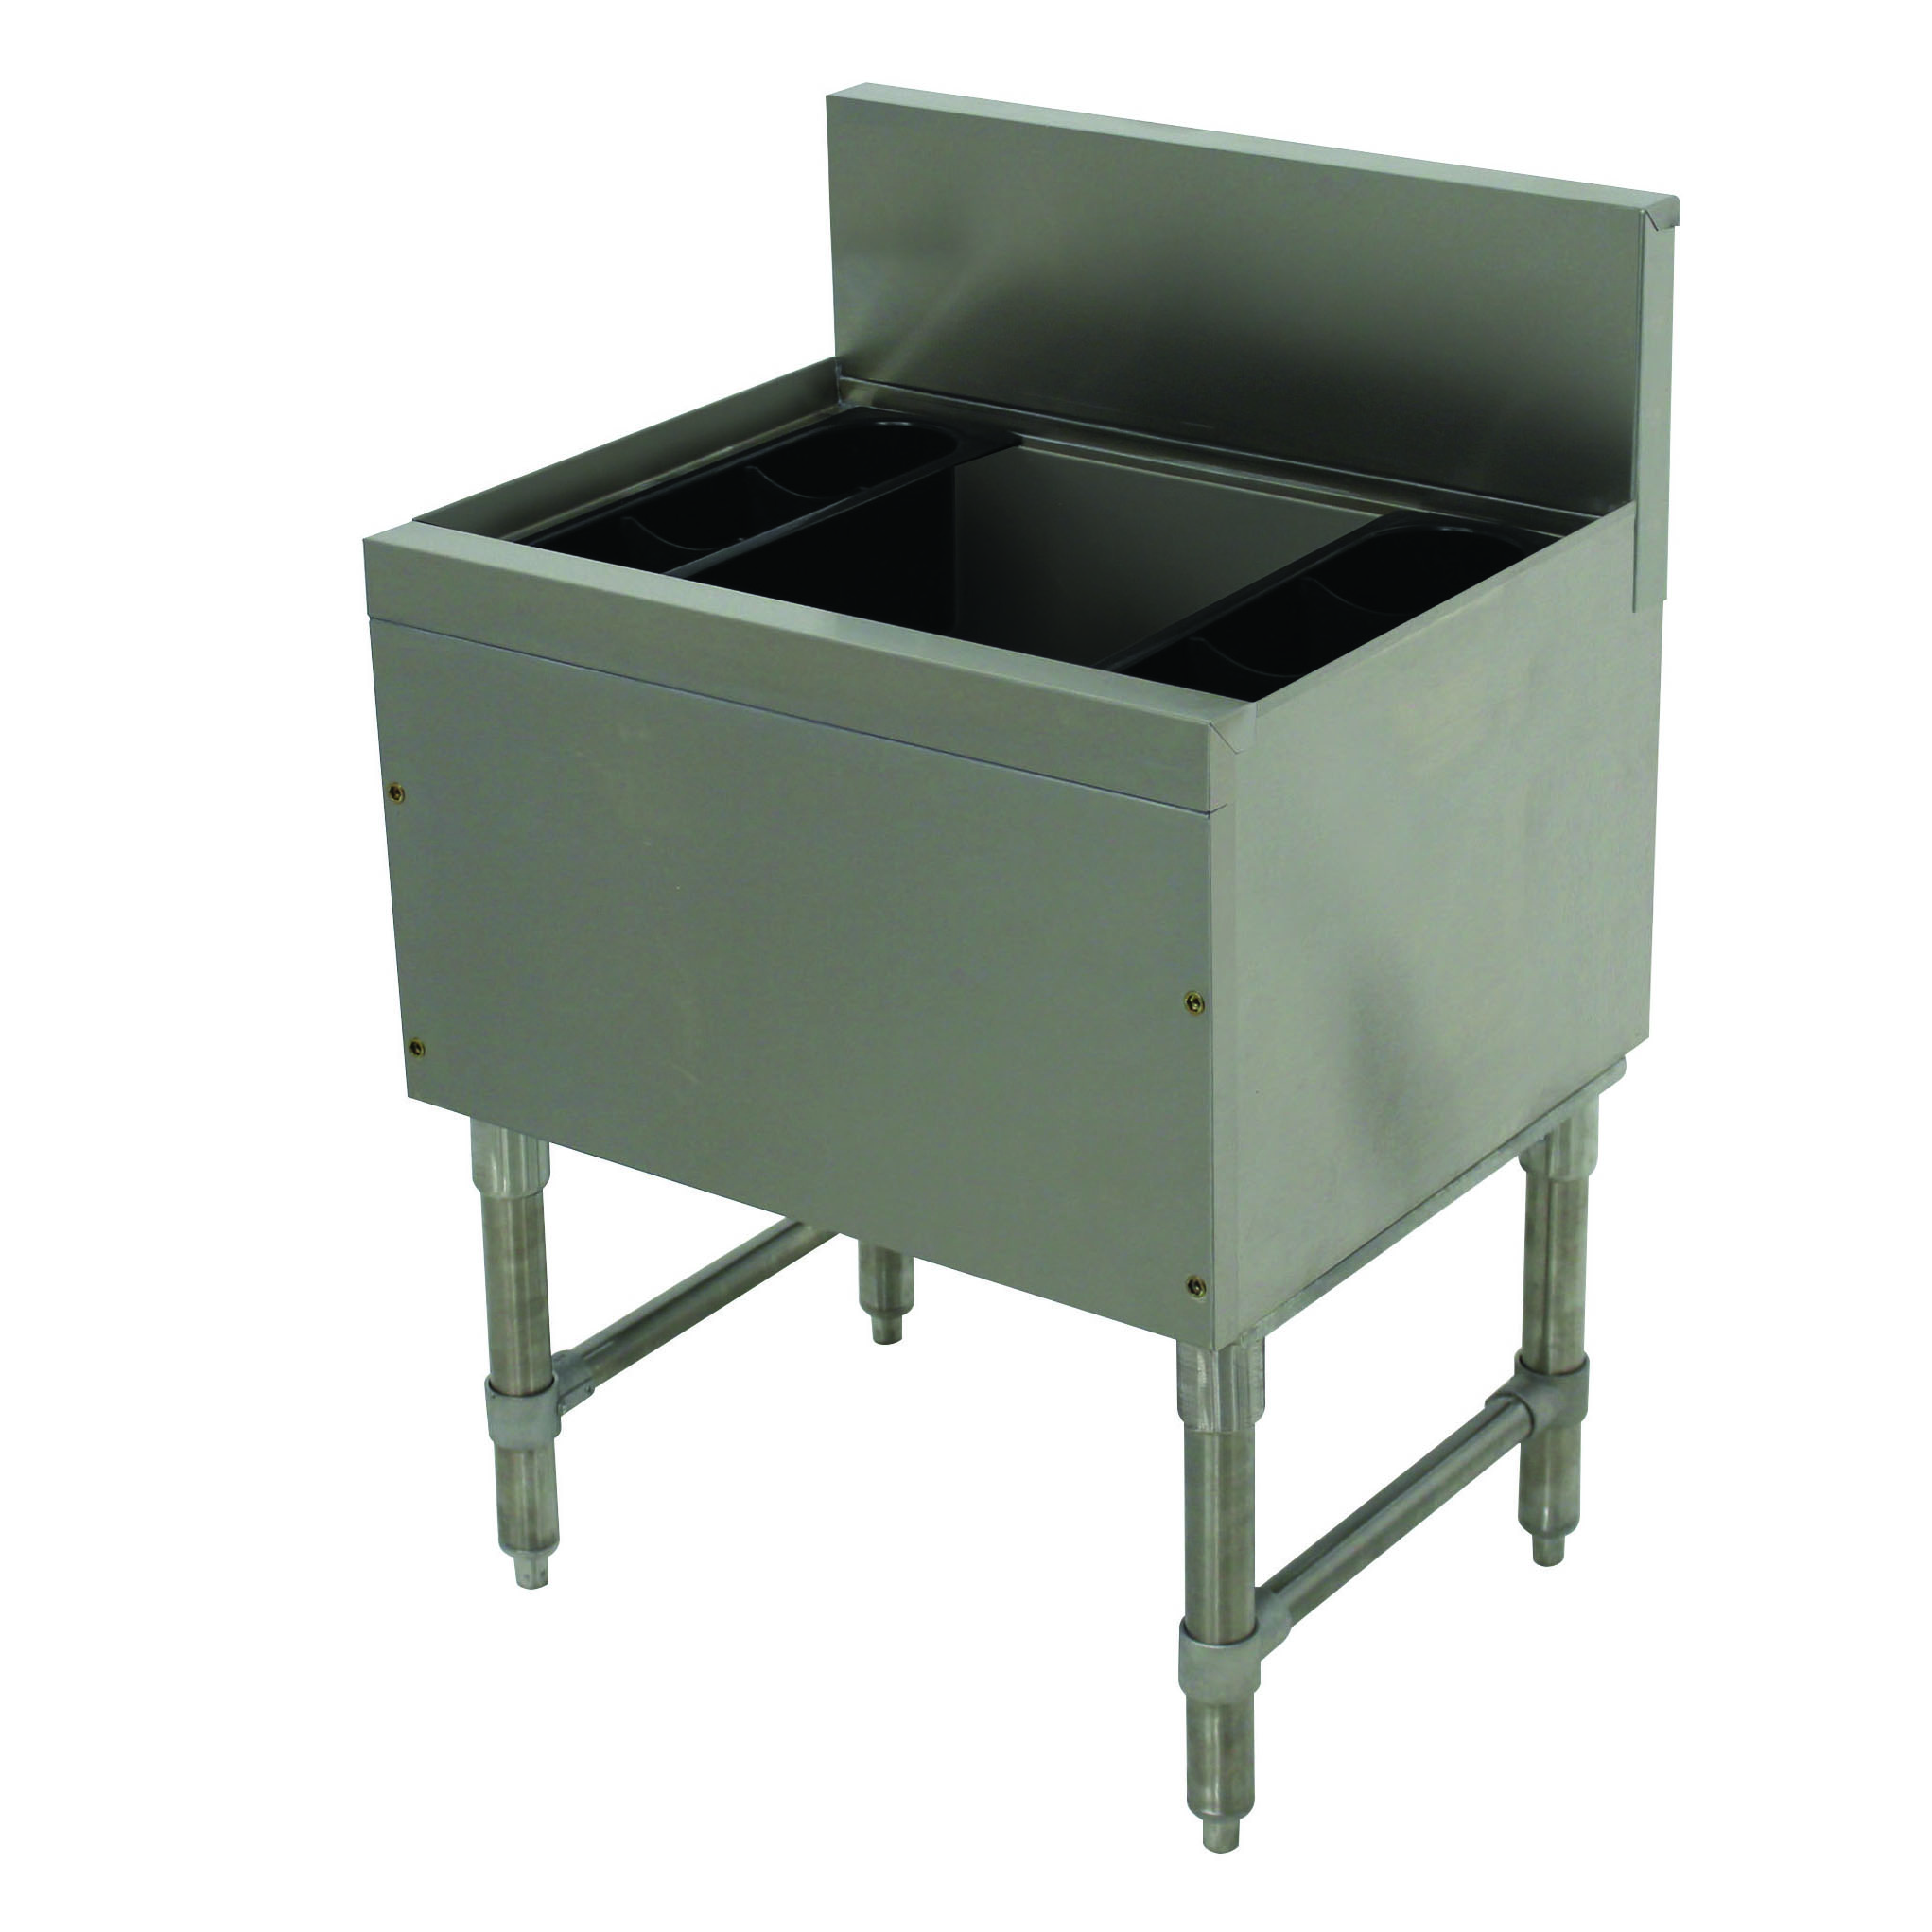 Advance Tabco PRI-19-30-10-XD underbar ice bin/cocktail unit